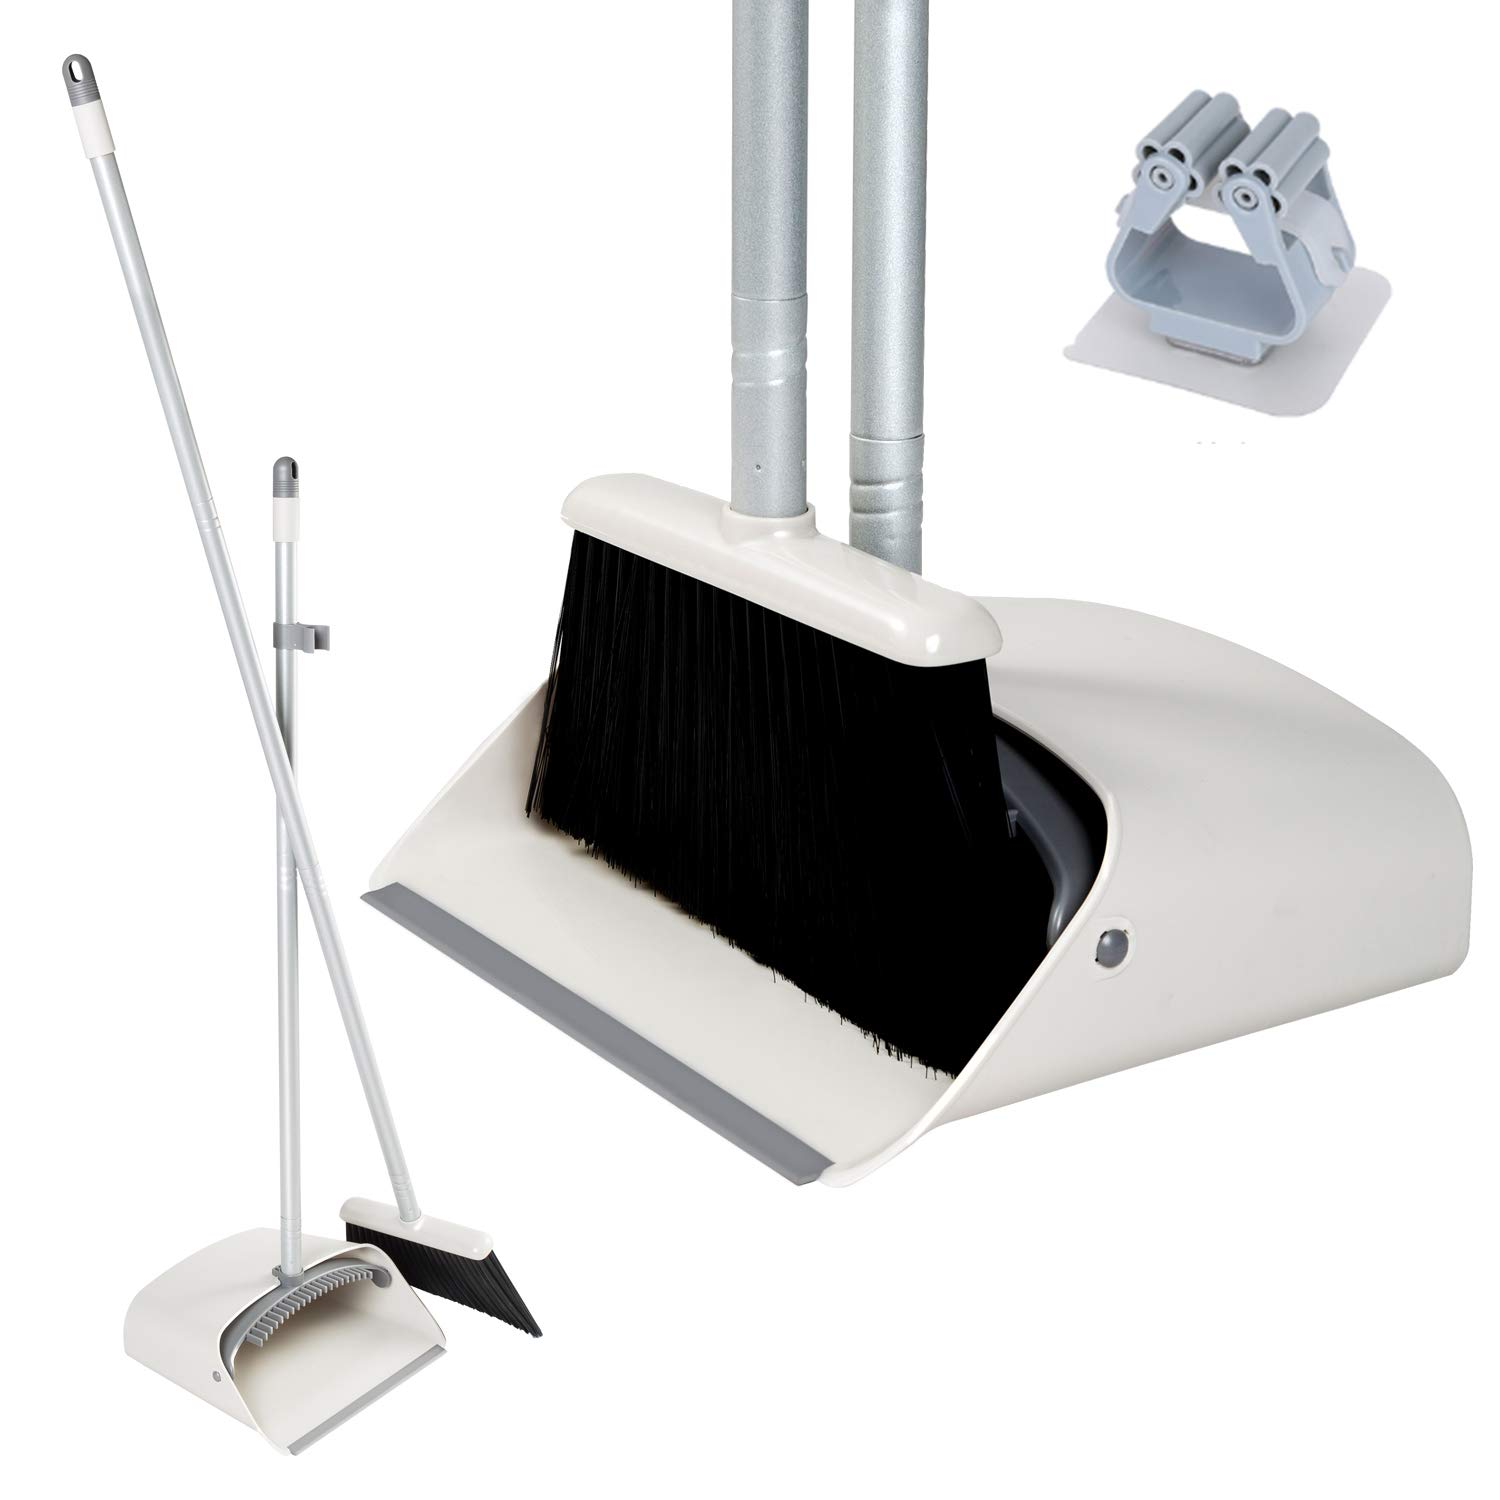 JEHONN Broom and Dustpan, Long Handle Lightweight Broom Set Upright Dustpan Stand Up Store Sweep Set for Home Room Kitchen Office Lobby, Grey